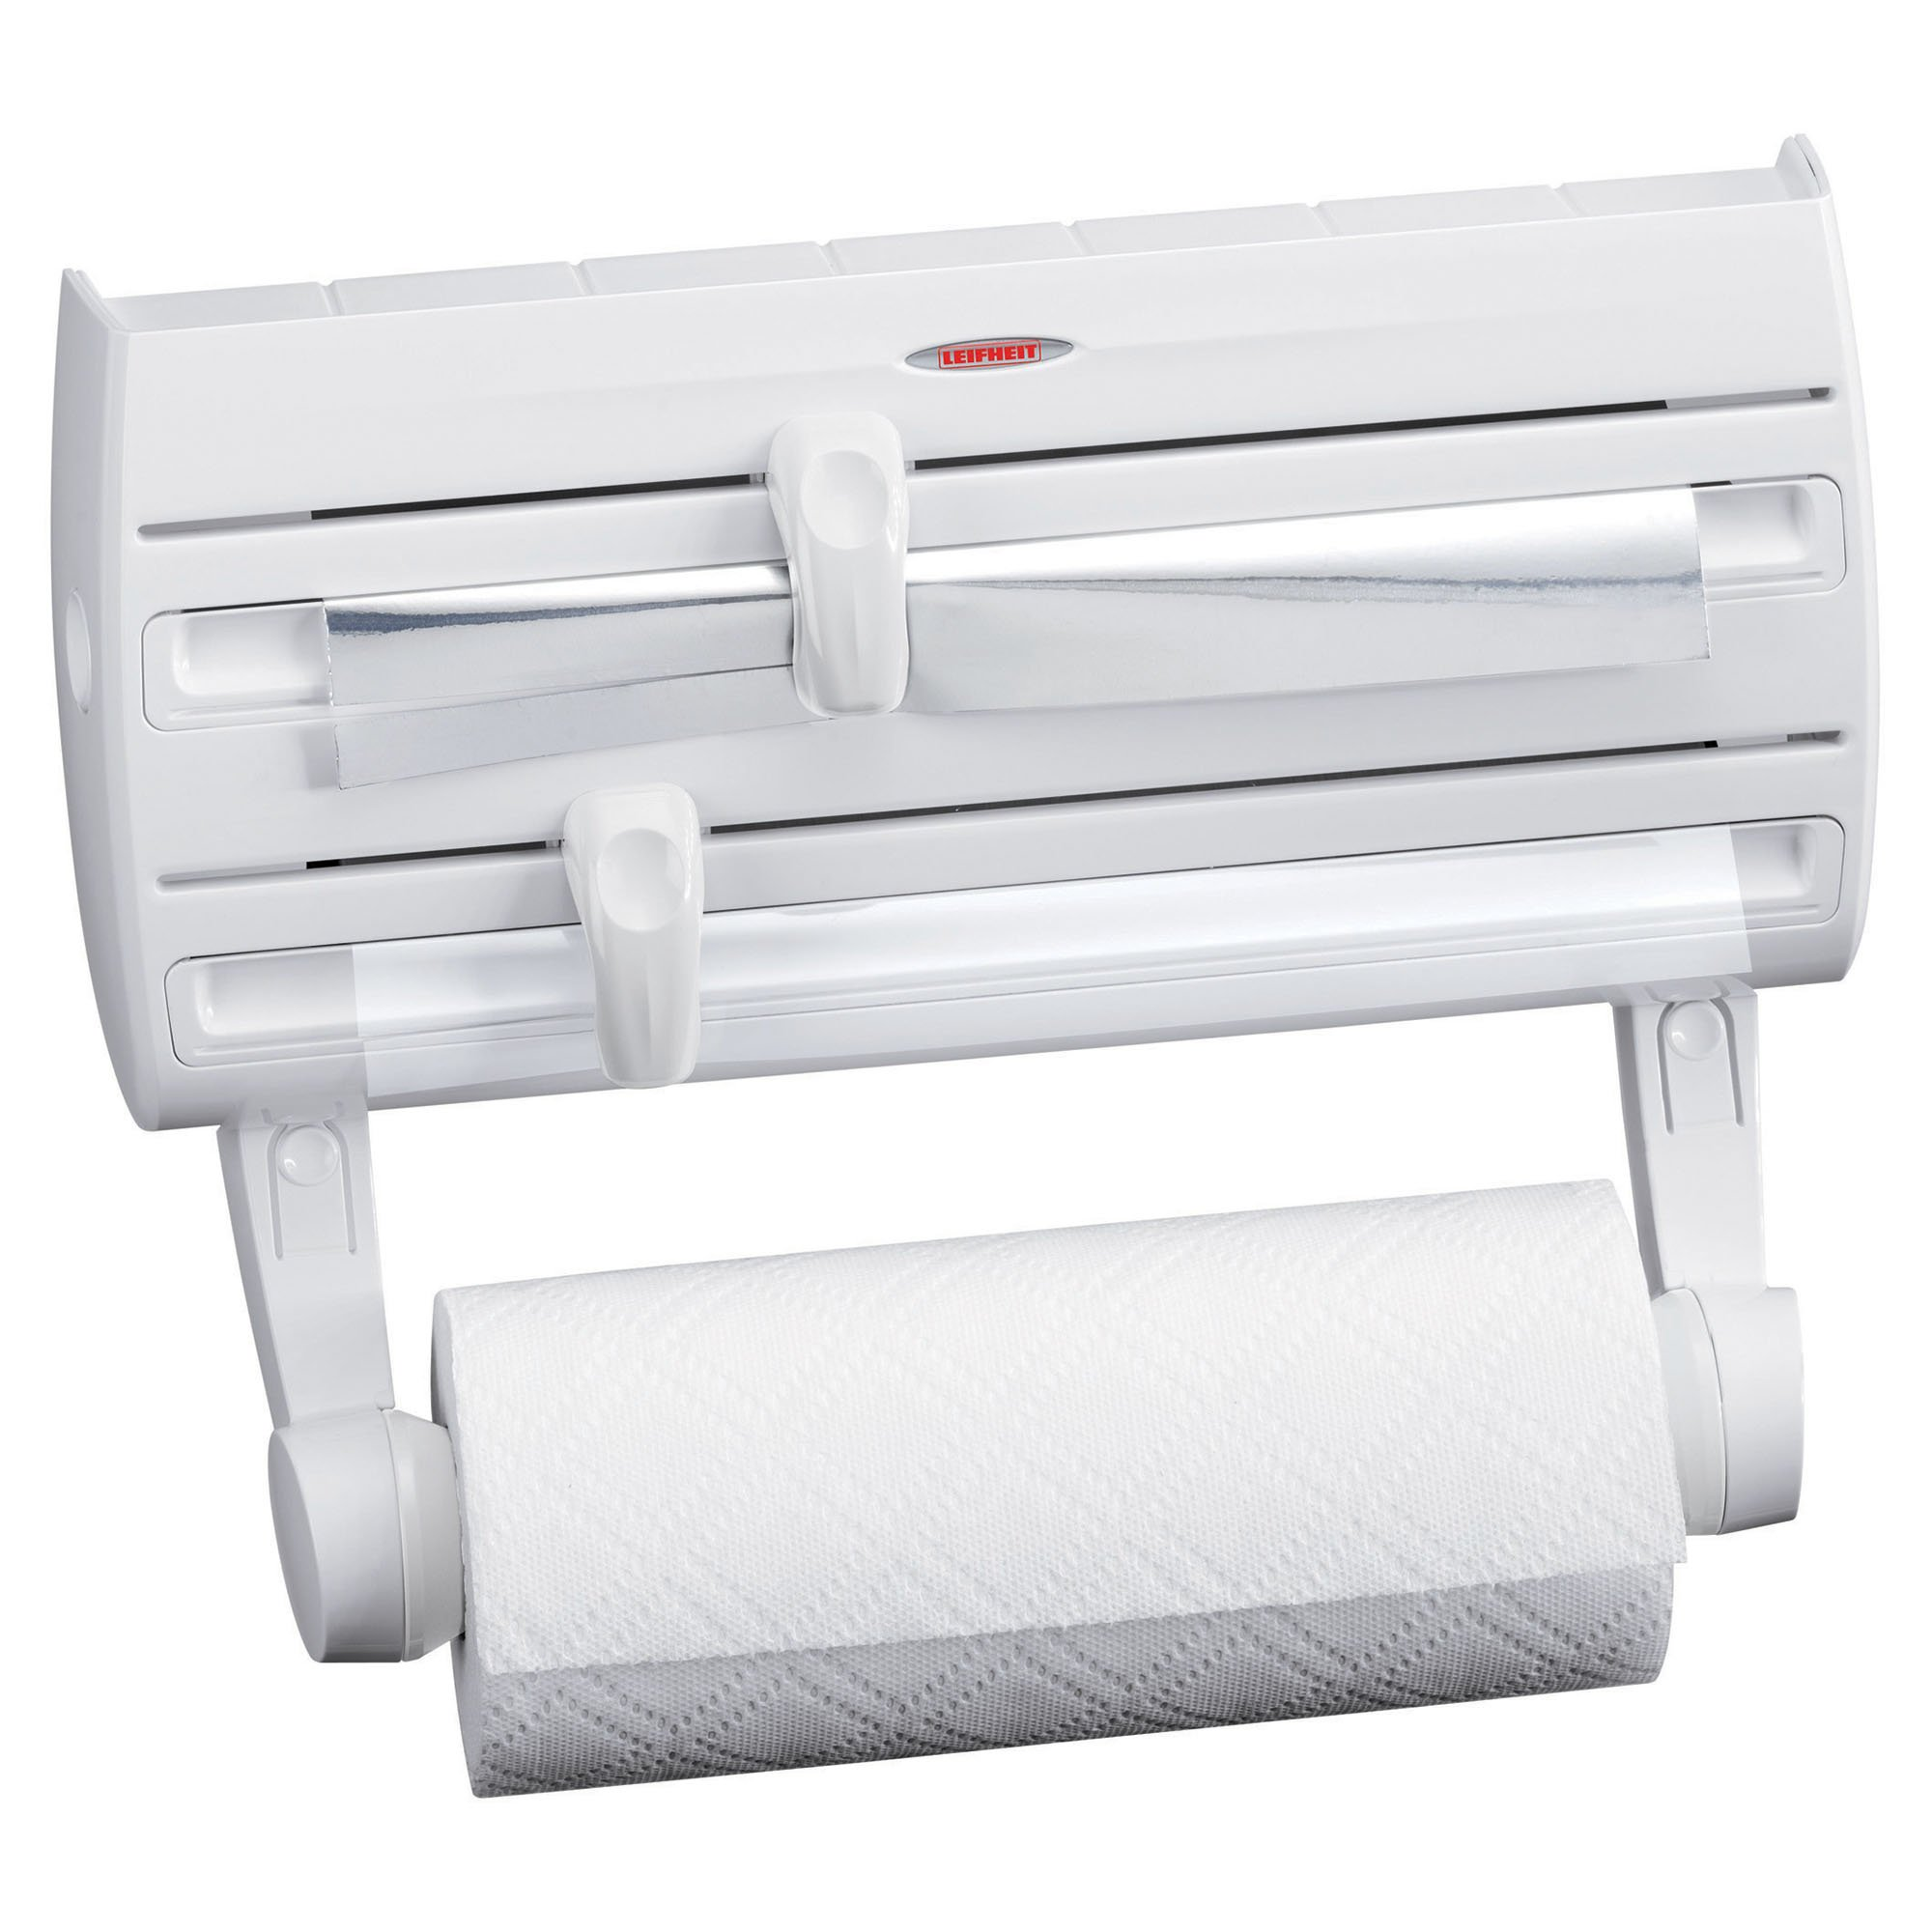 Leifheit 25771 4-in-1 Wall-Mount Paper Towel Holder   Plastic Wrap and Foil Dispenser with Spice Rack   White by Leifheit